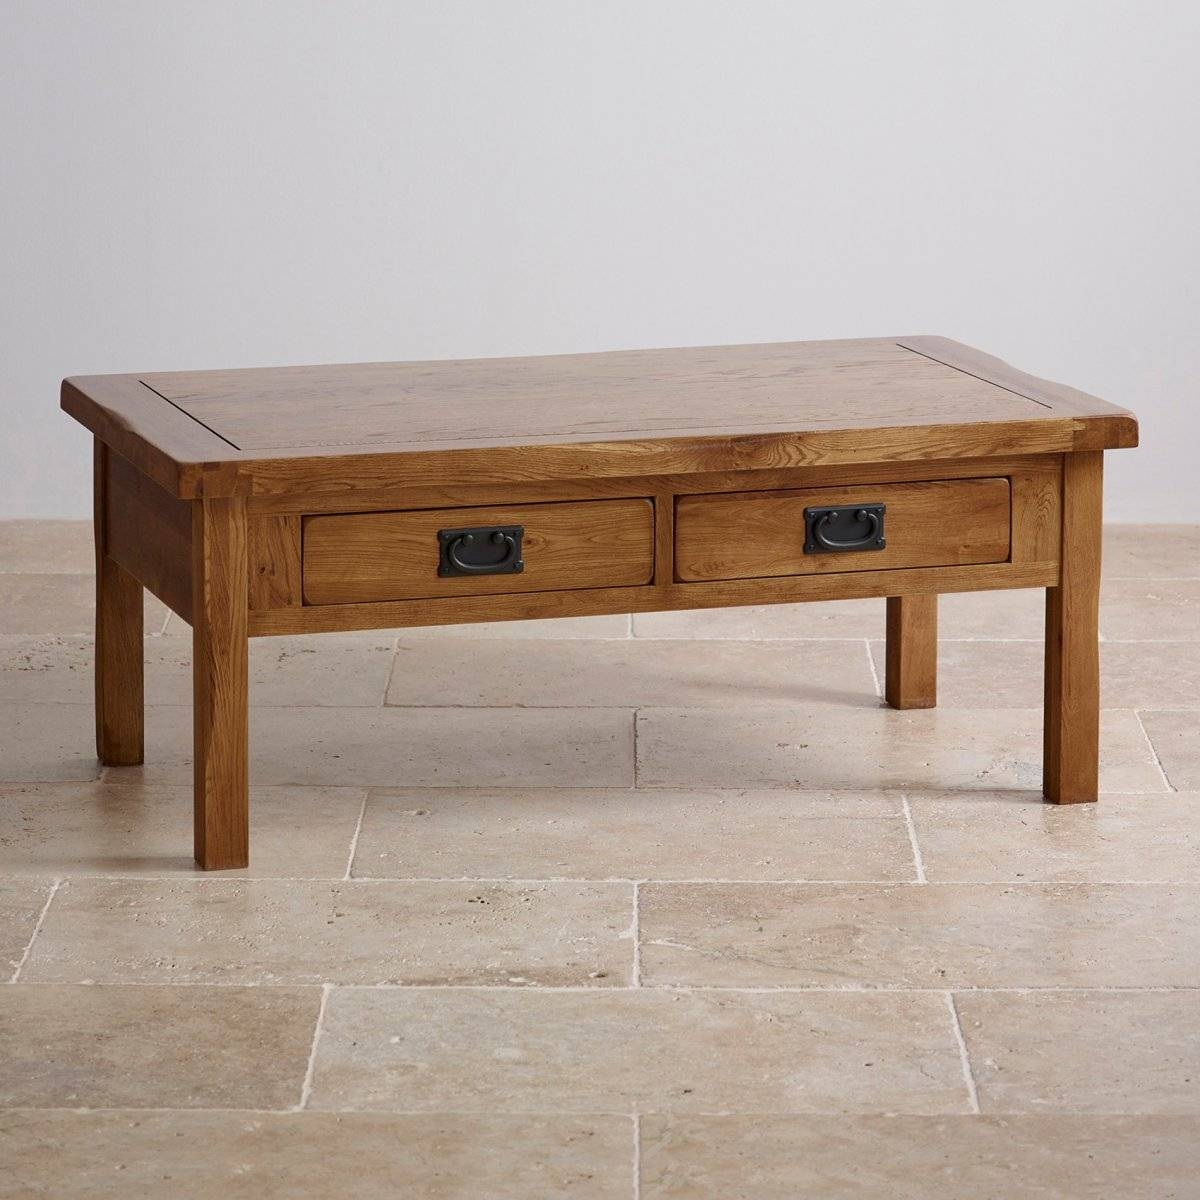 Original Rustic 4 Drawer Coffee Table In Solid Oak with regard to Oak Coffee Tables With Storage (Image 11 of 15)